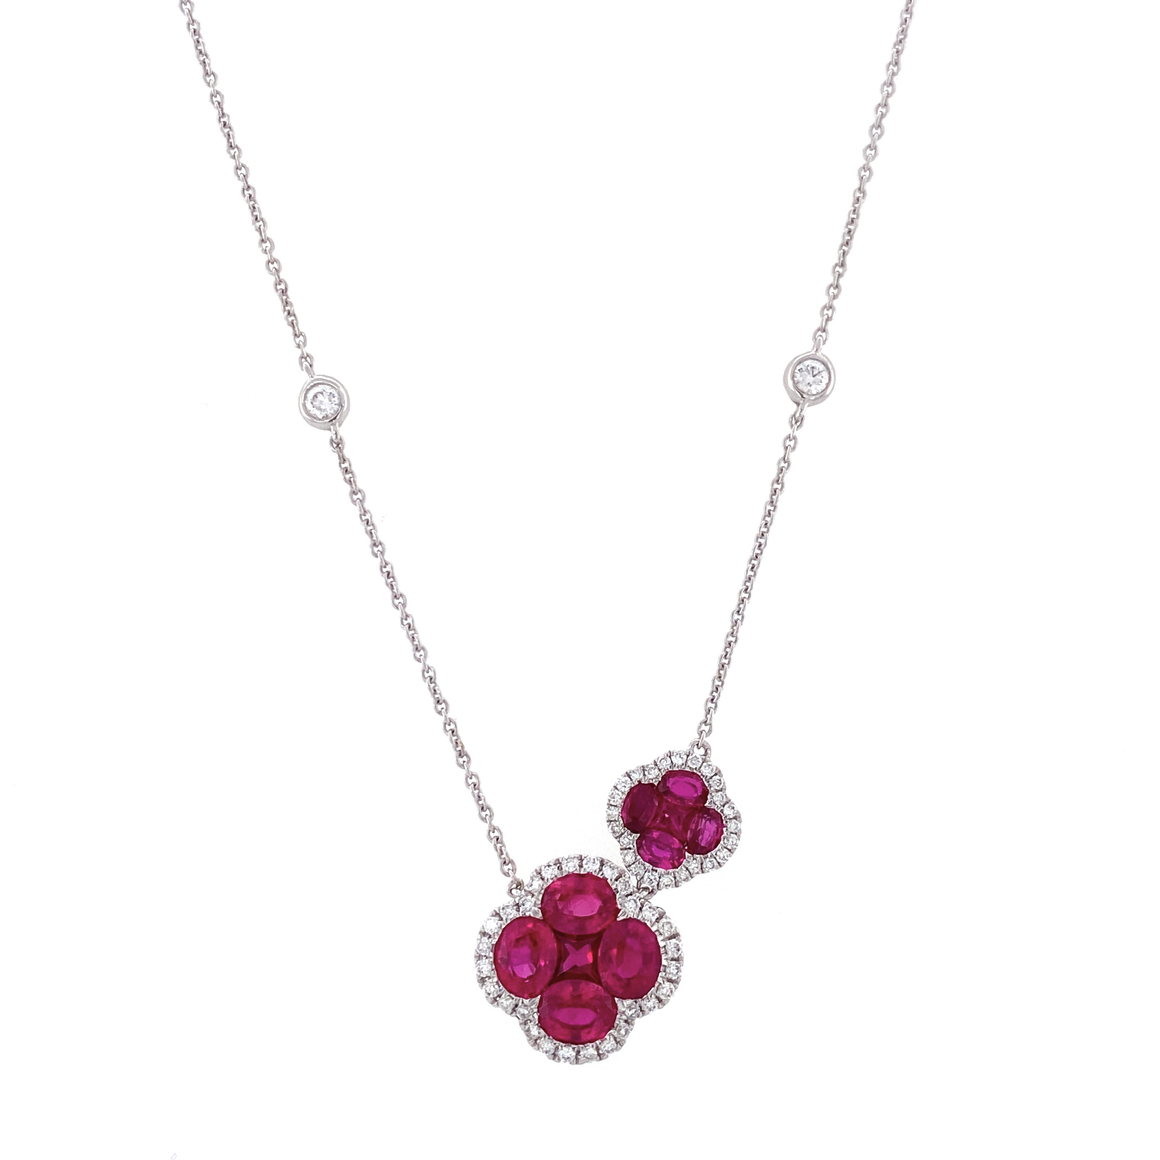 Ruby Bezel Stations Necklace - Lesley Ann Jewels